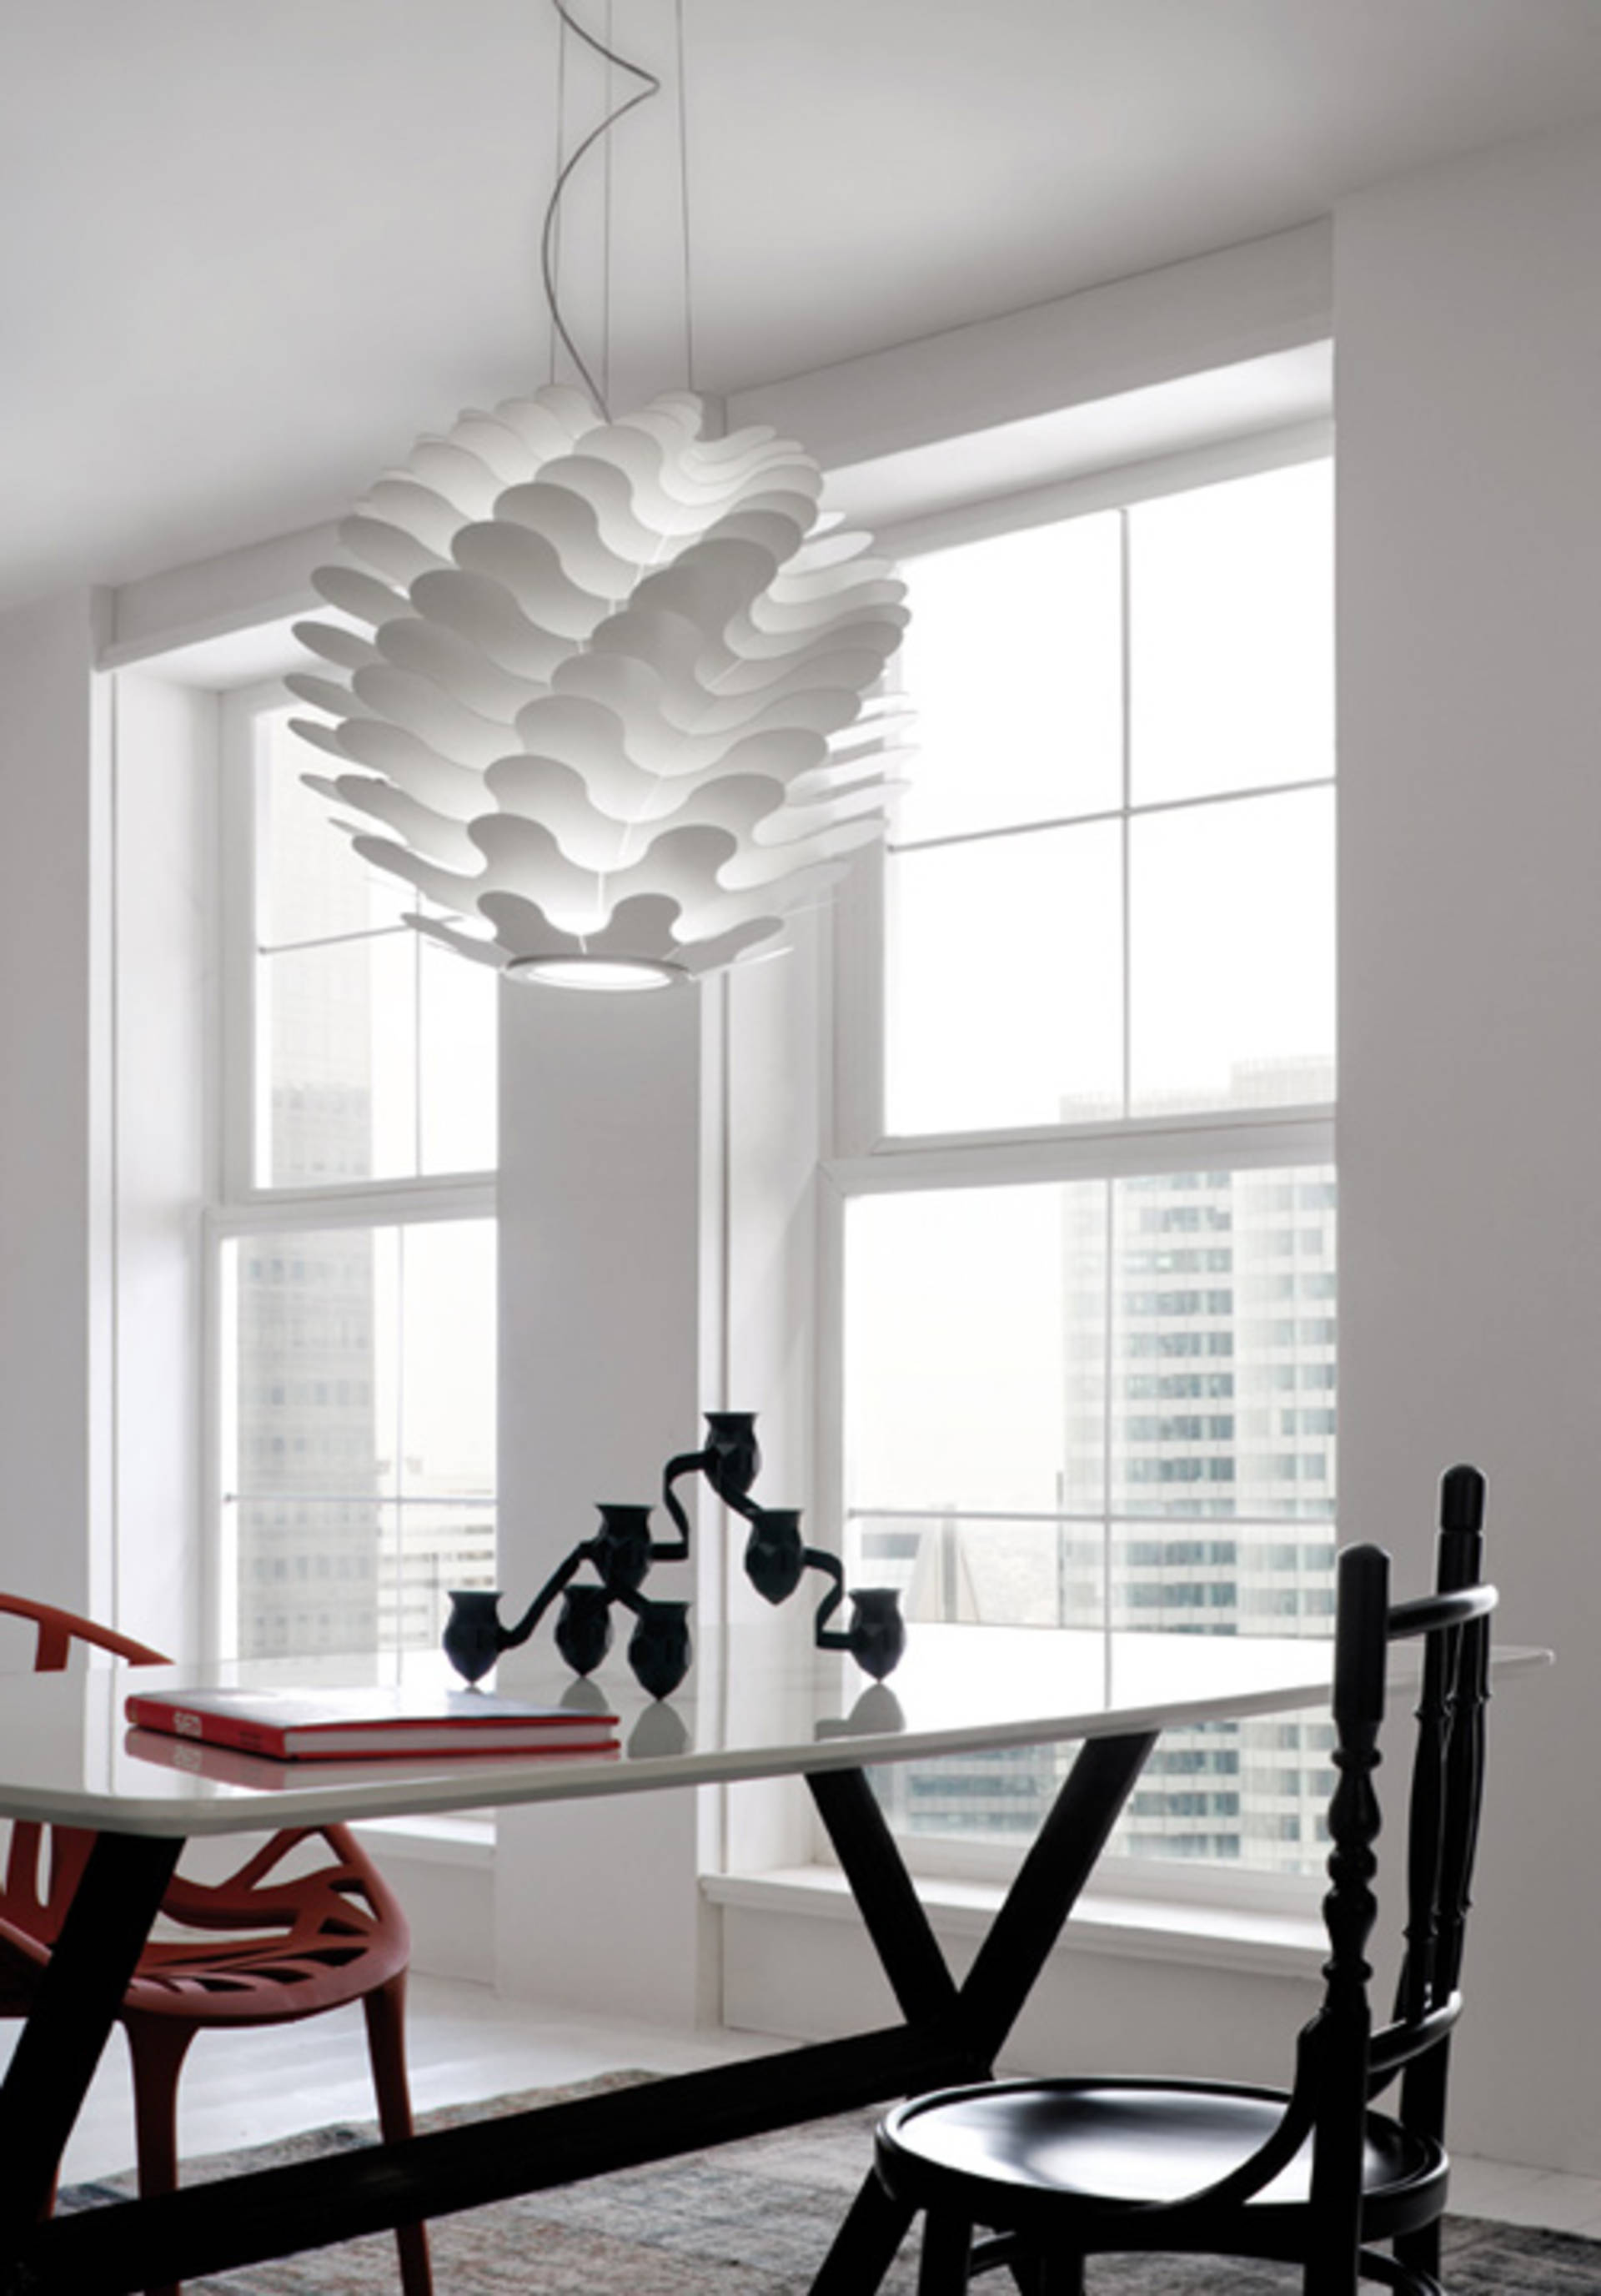 Libera Lamp From Lucente An Unusual Play Of Light And